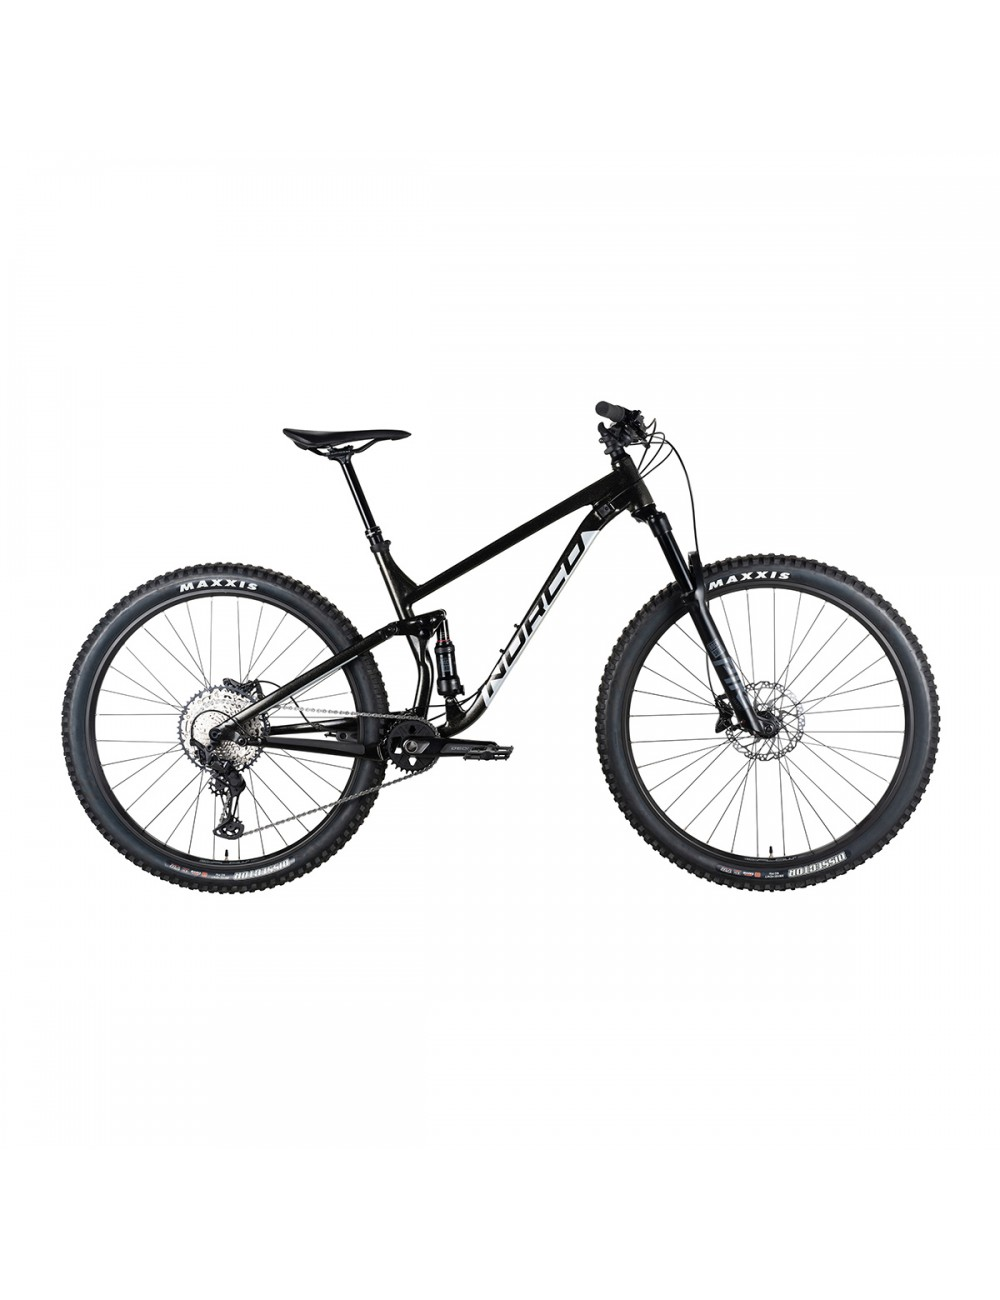 Norco Fluid A9.1 Bike - Black/Silver_13332